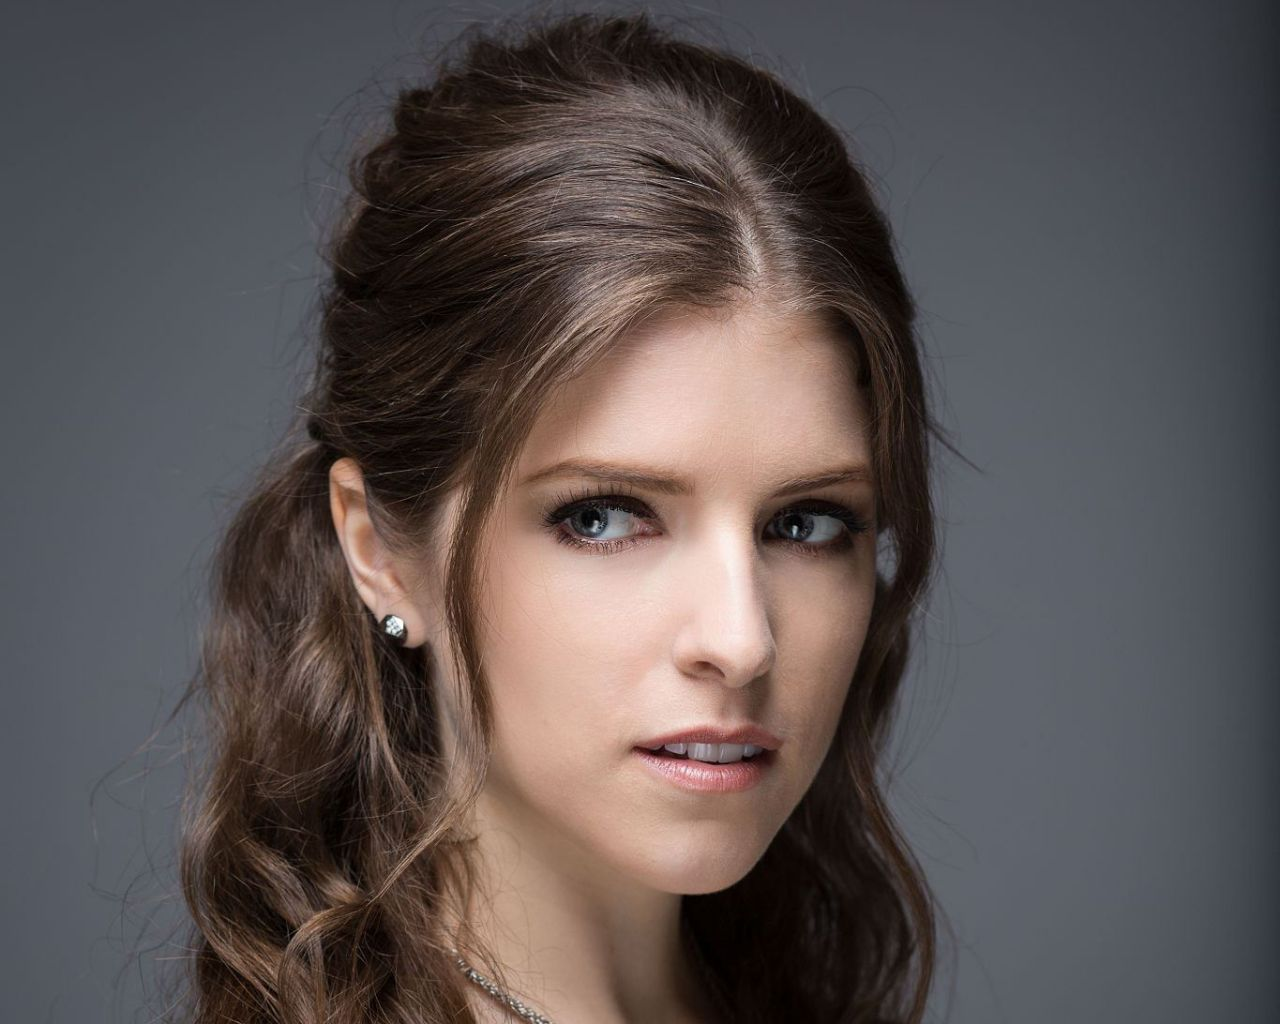 Anna Kendrick - Photoshoot for The Hollywood Reporter ... Anna Kendrick